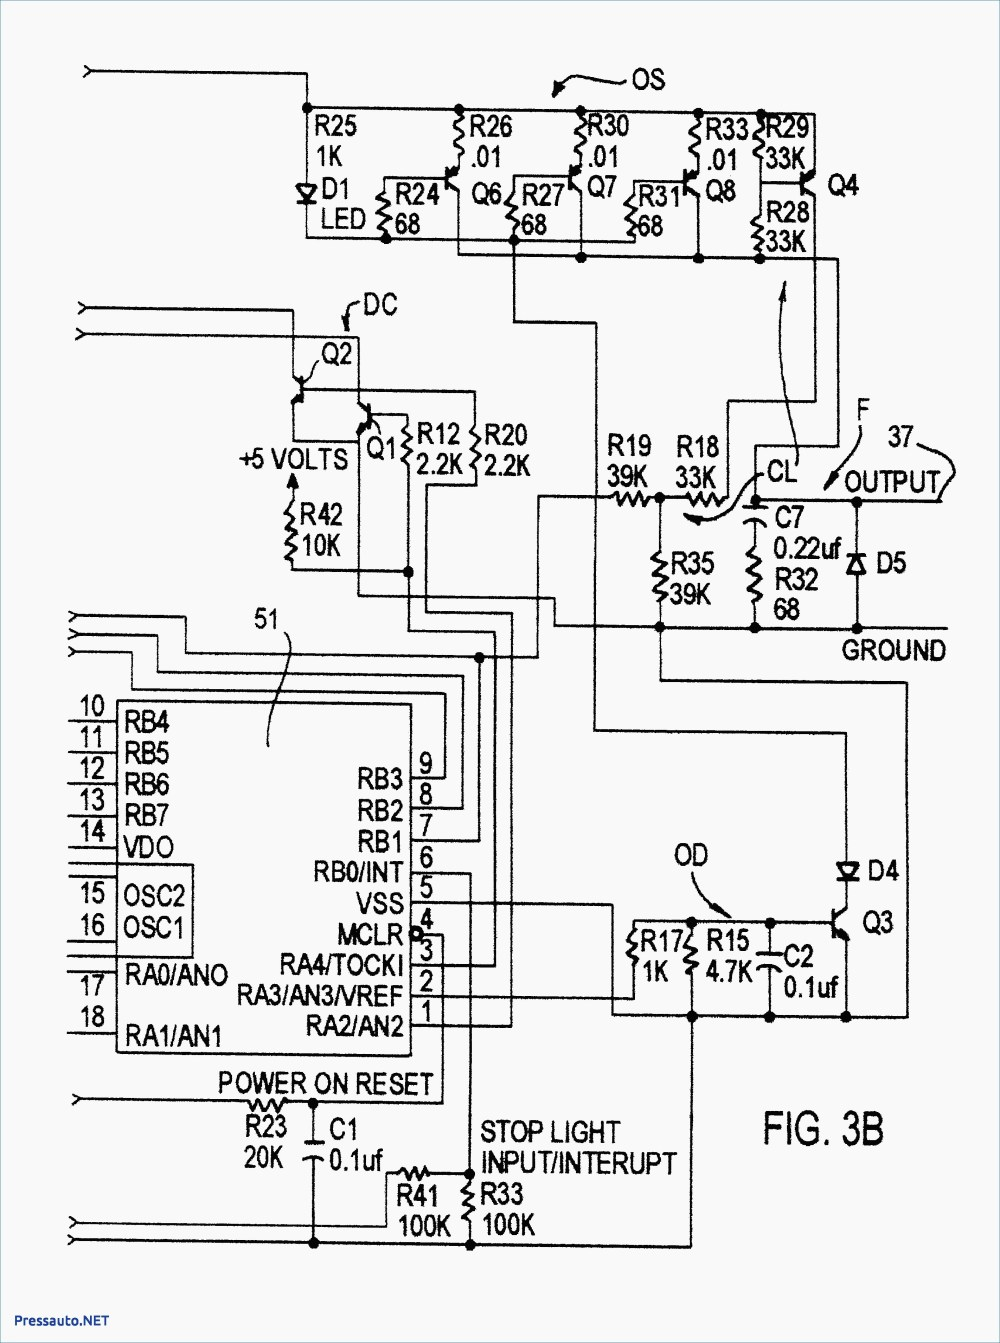 medium resolution of simplicity mower wiring diagram wiring diagram user lawn mower wiring diagram simplicity wiring diagram img simplicity